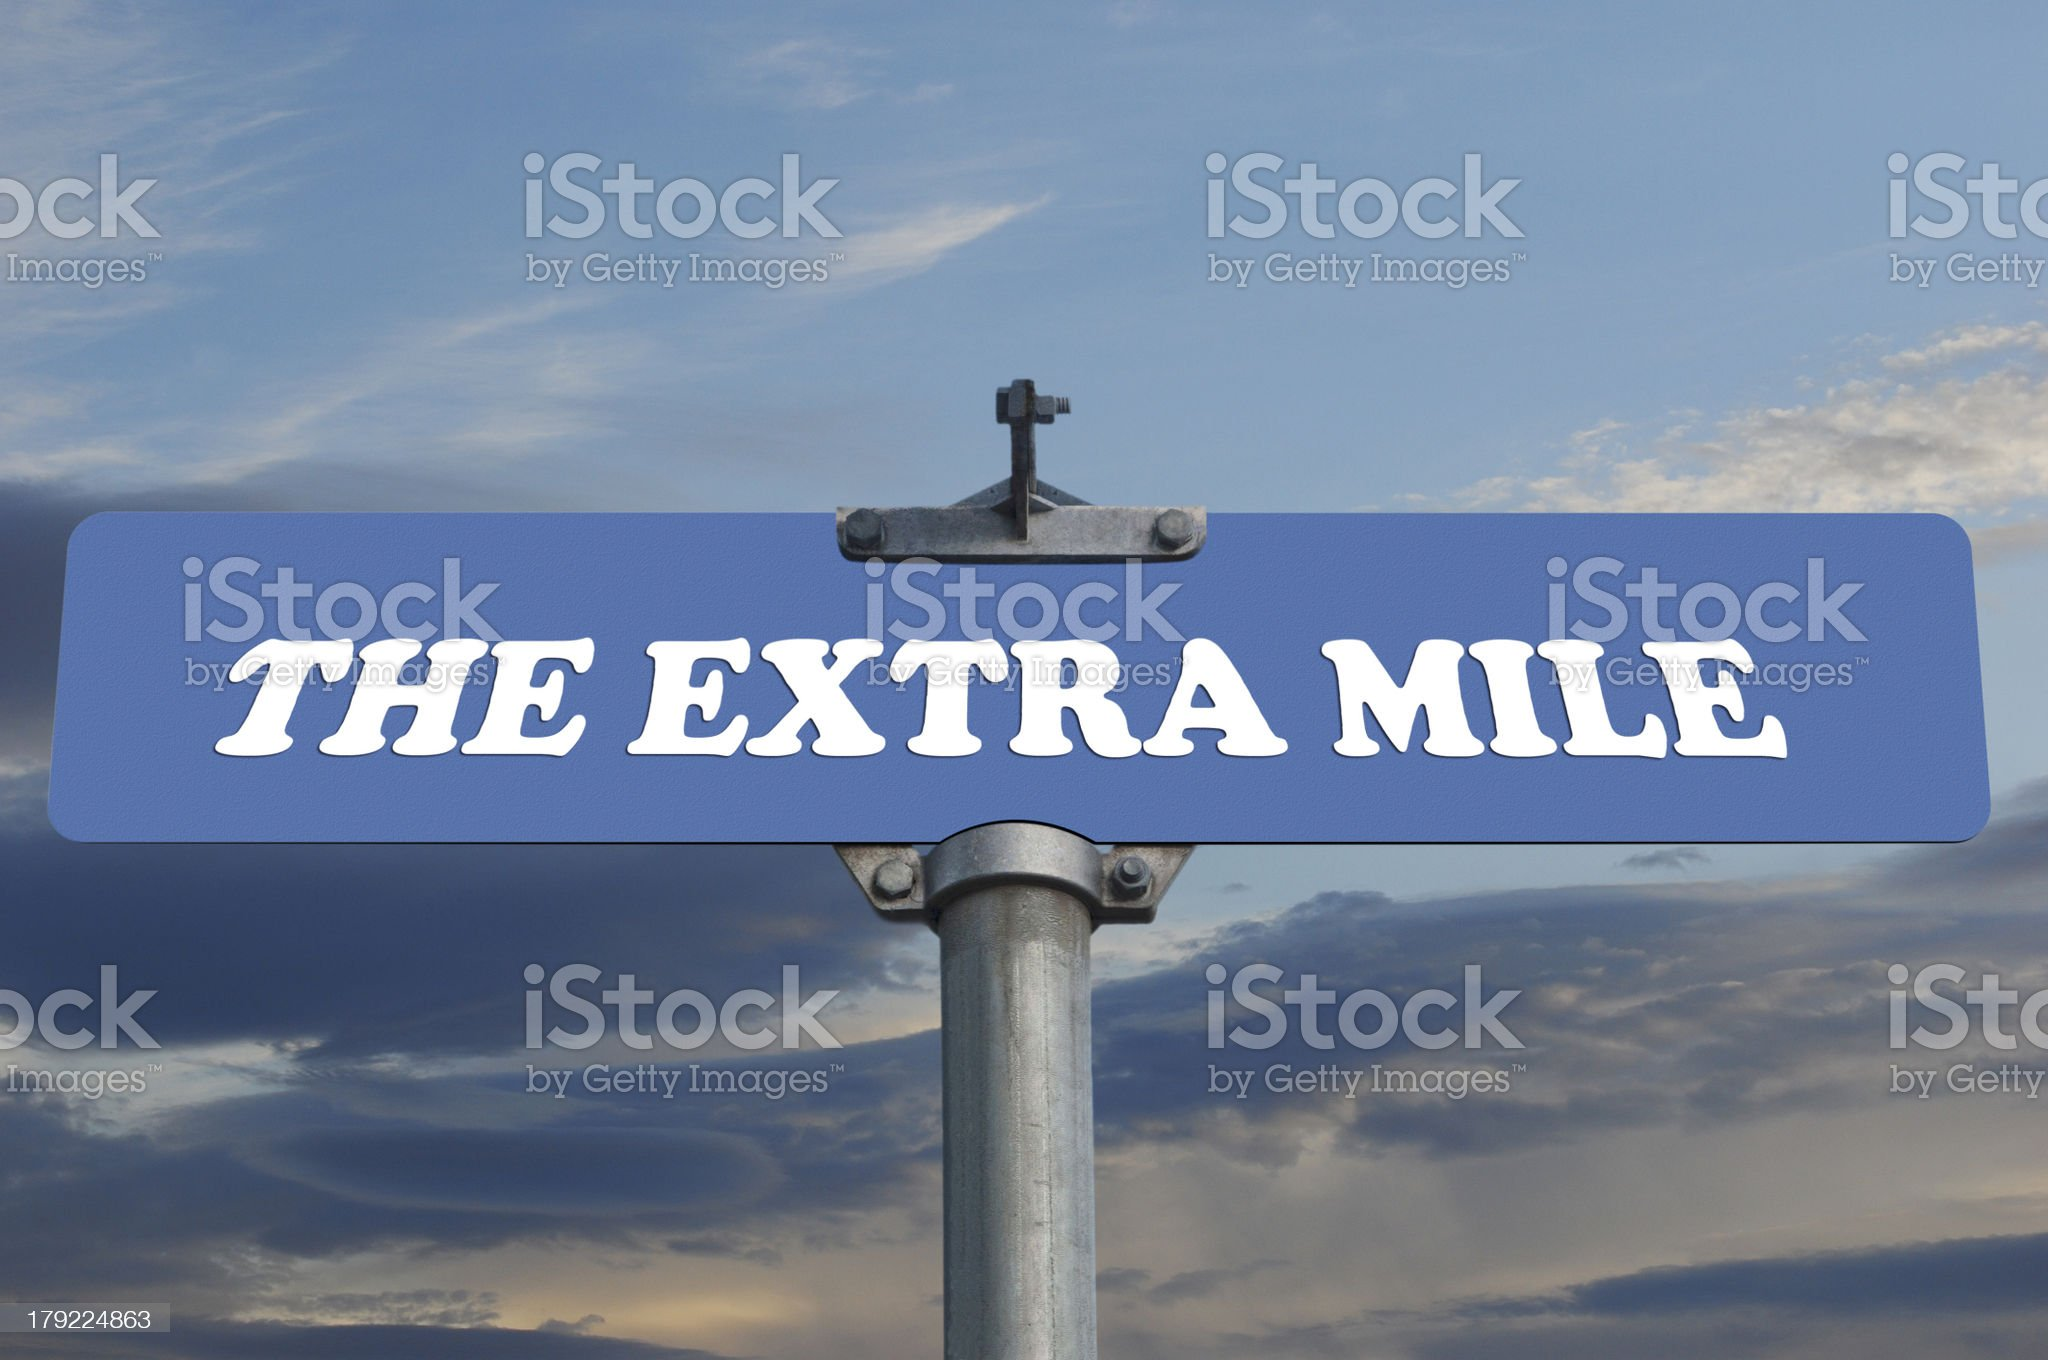 The extral mile road sign royalty-free stock photo